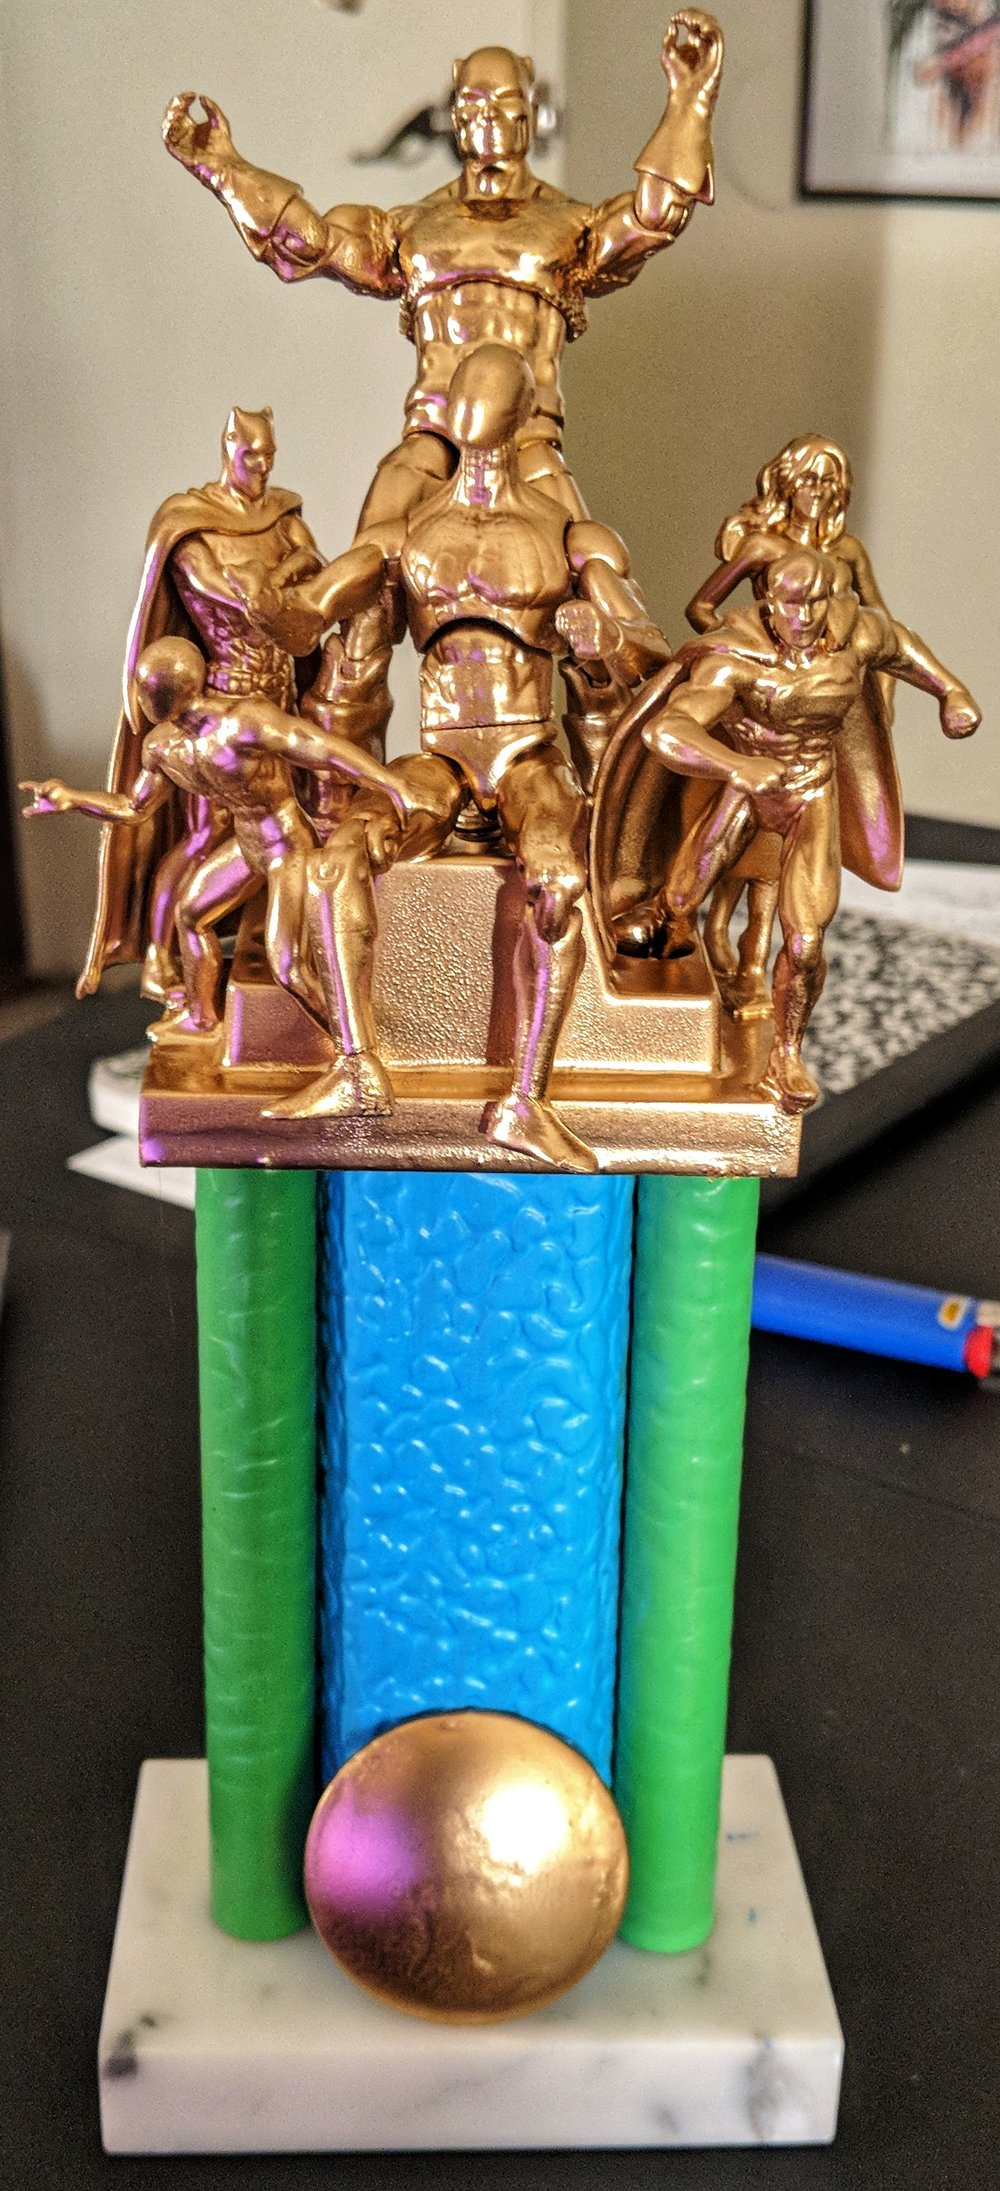 - You can't just win bragging rights. You need an awesome trophy!(Trophy lovingly made by Becca Thornton)